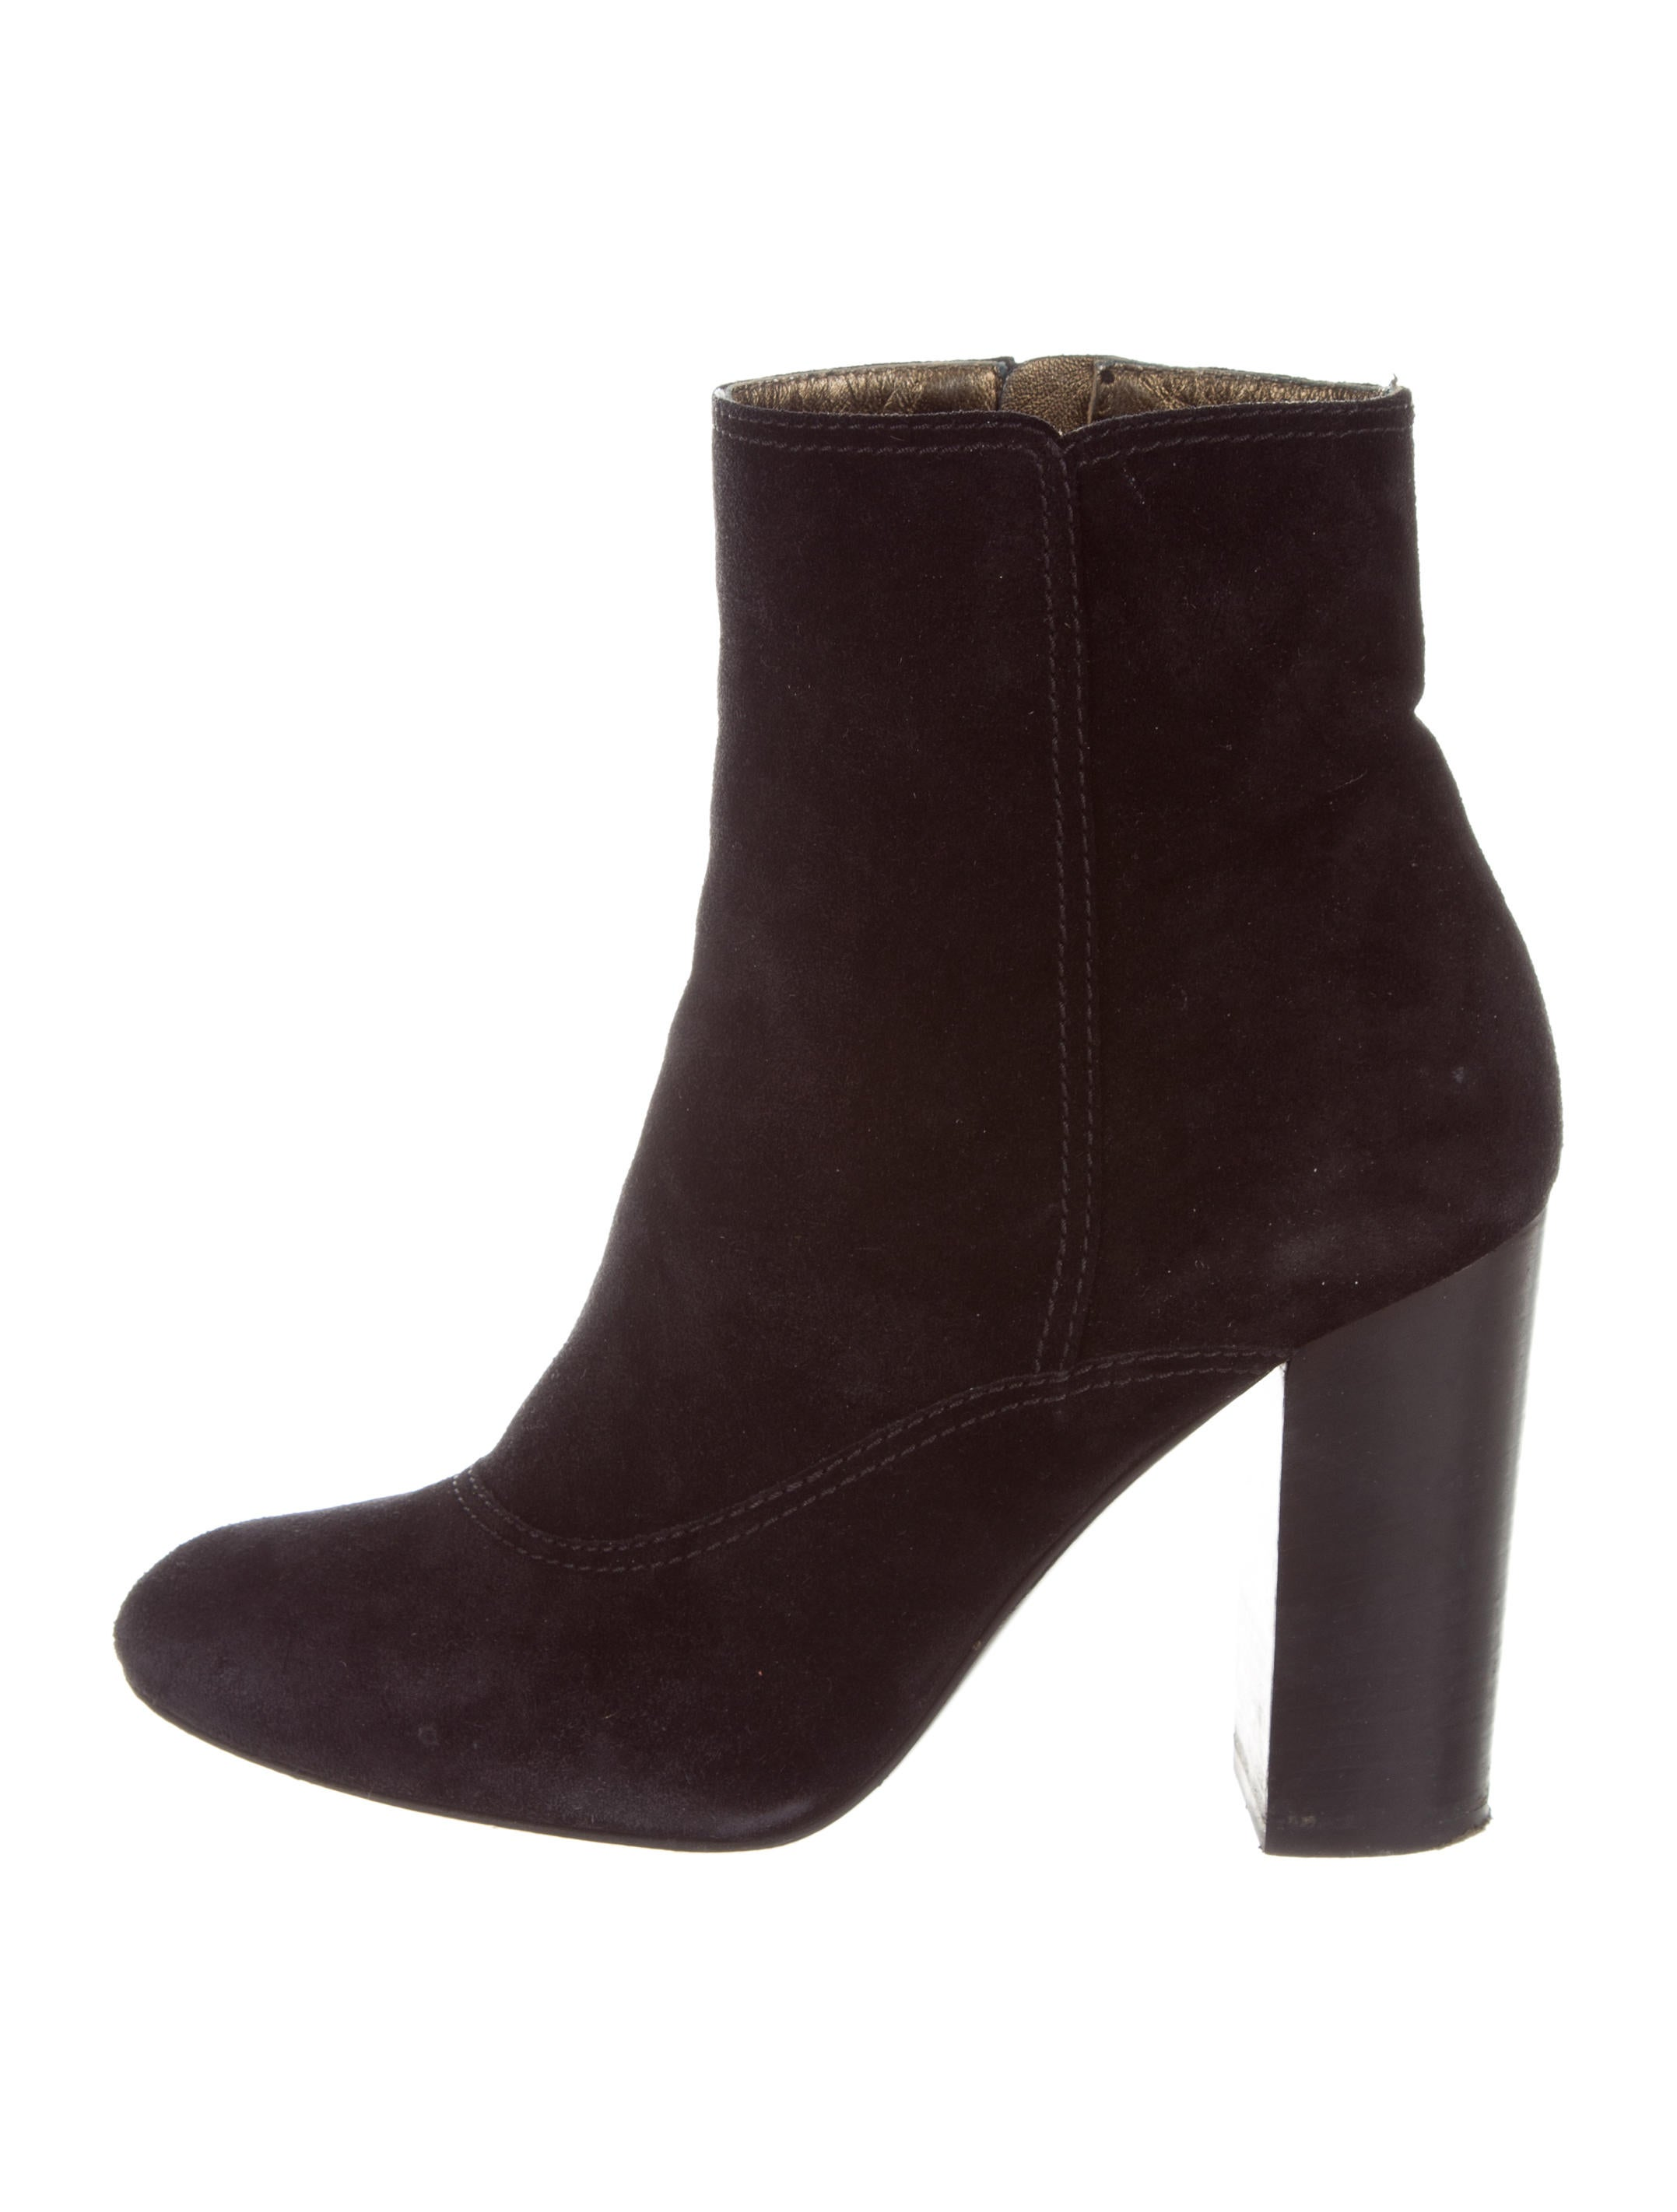 sneakernews online Lanvin Suede Pointed-Toe Booties buy cheap fake clearance cheap eJT76